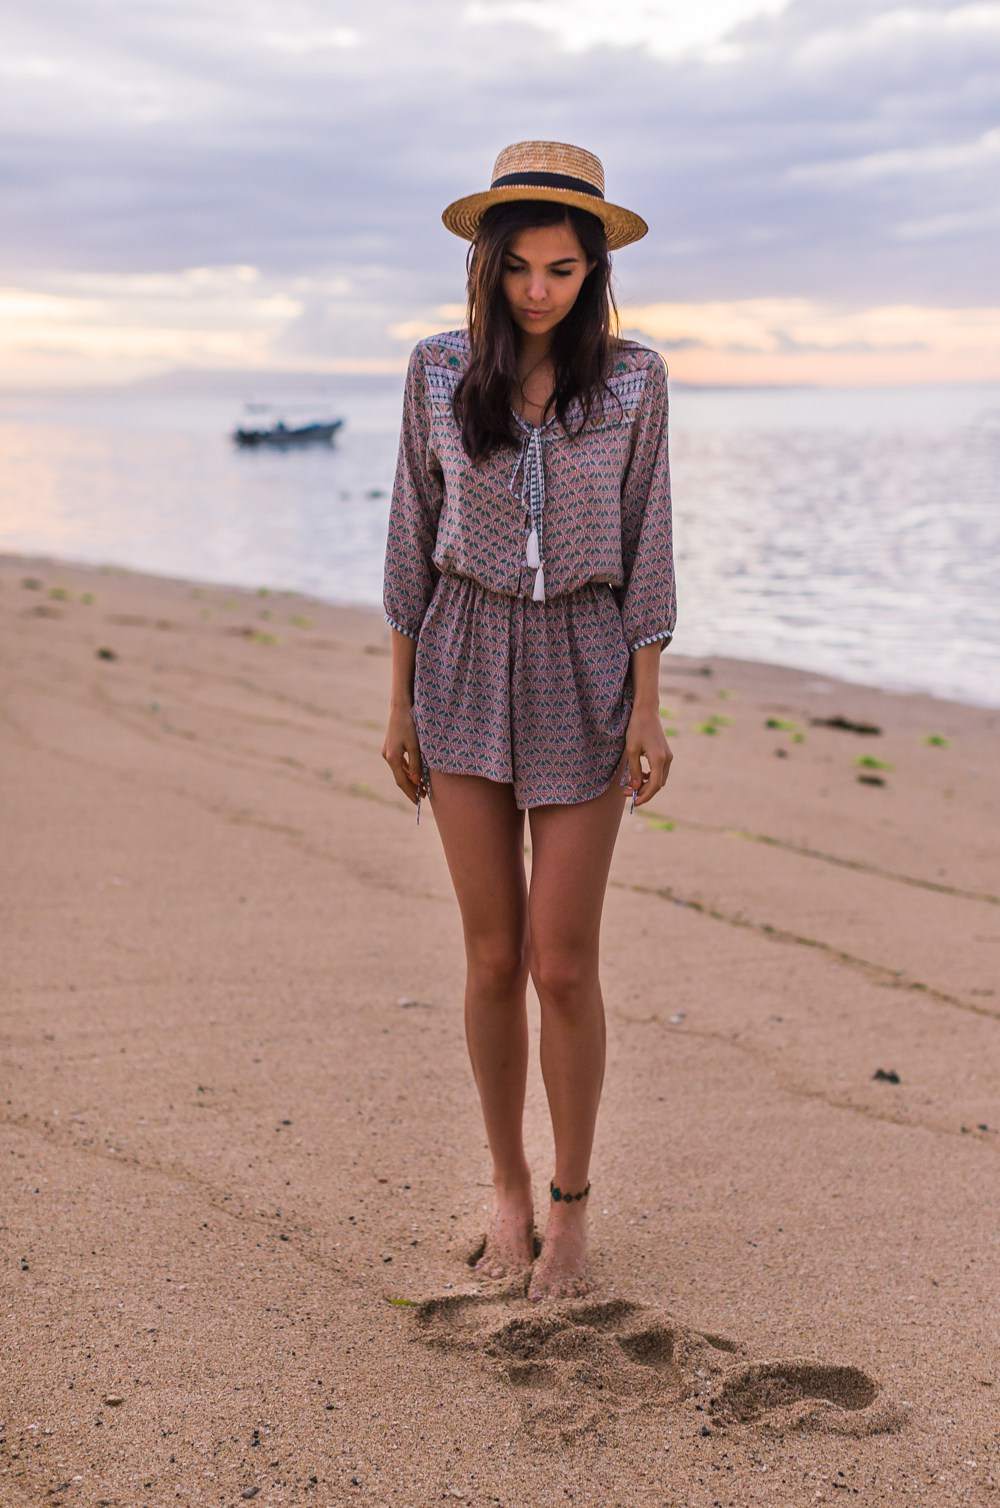 For A Cute Beach Outfit Idea Try Wearing Loose And Light Patterned Playsuit With